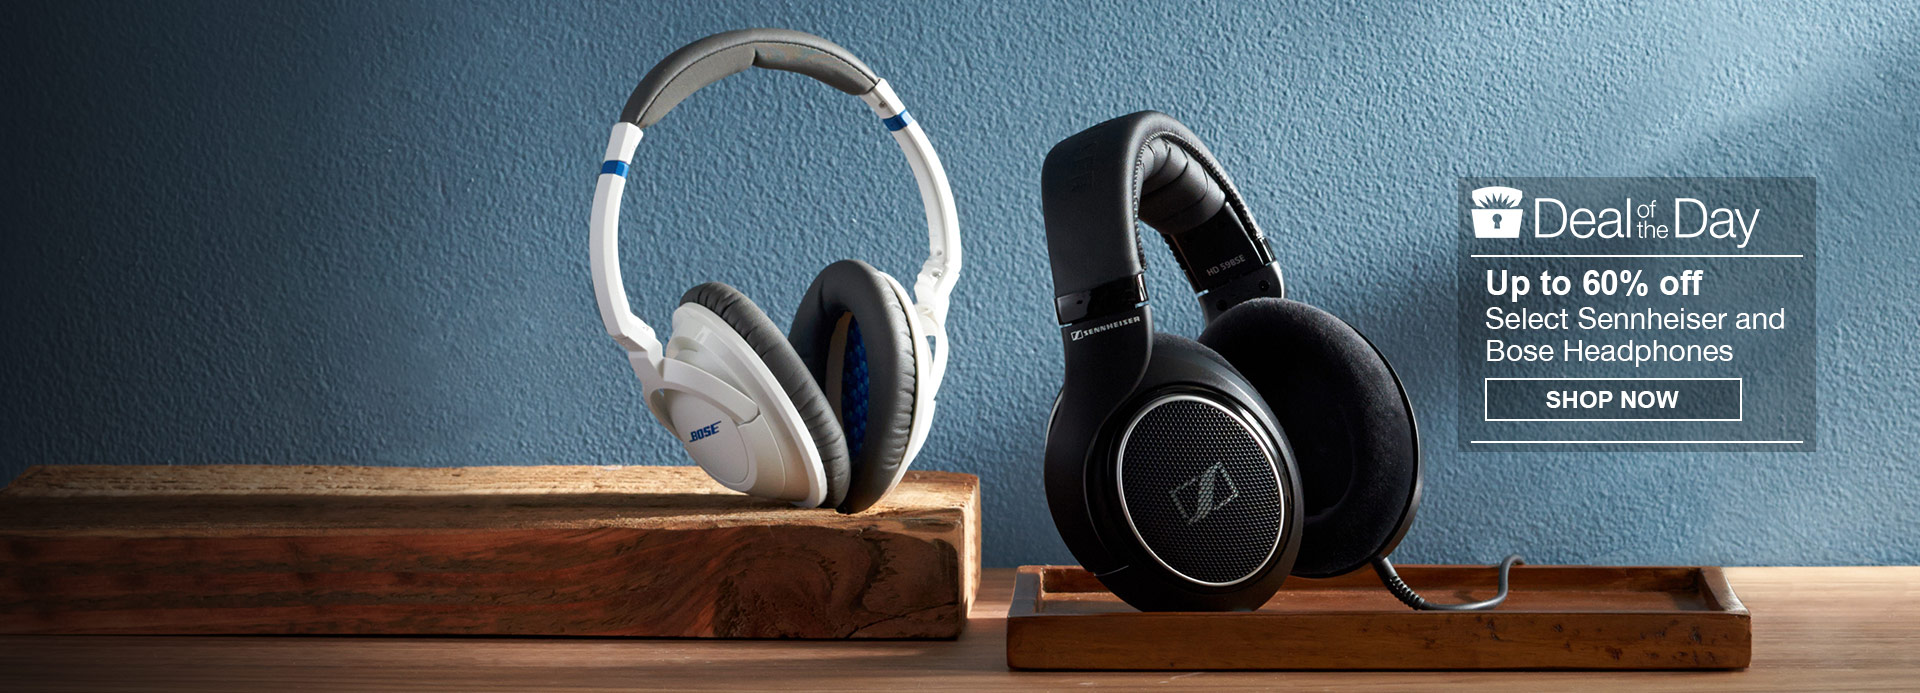 Up to 60% Off Select Sennheiser and Bose Headphones